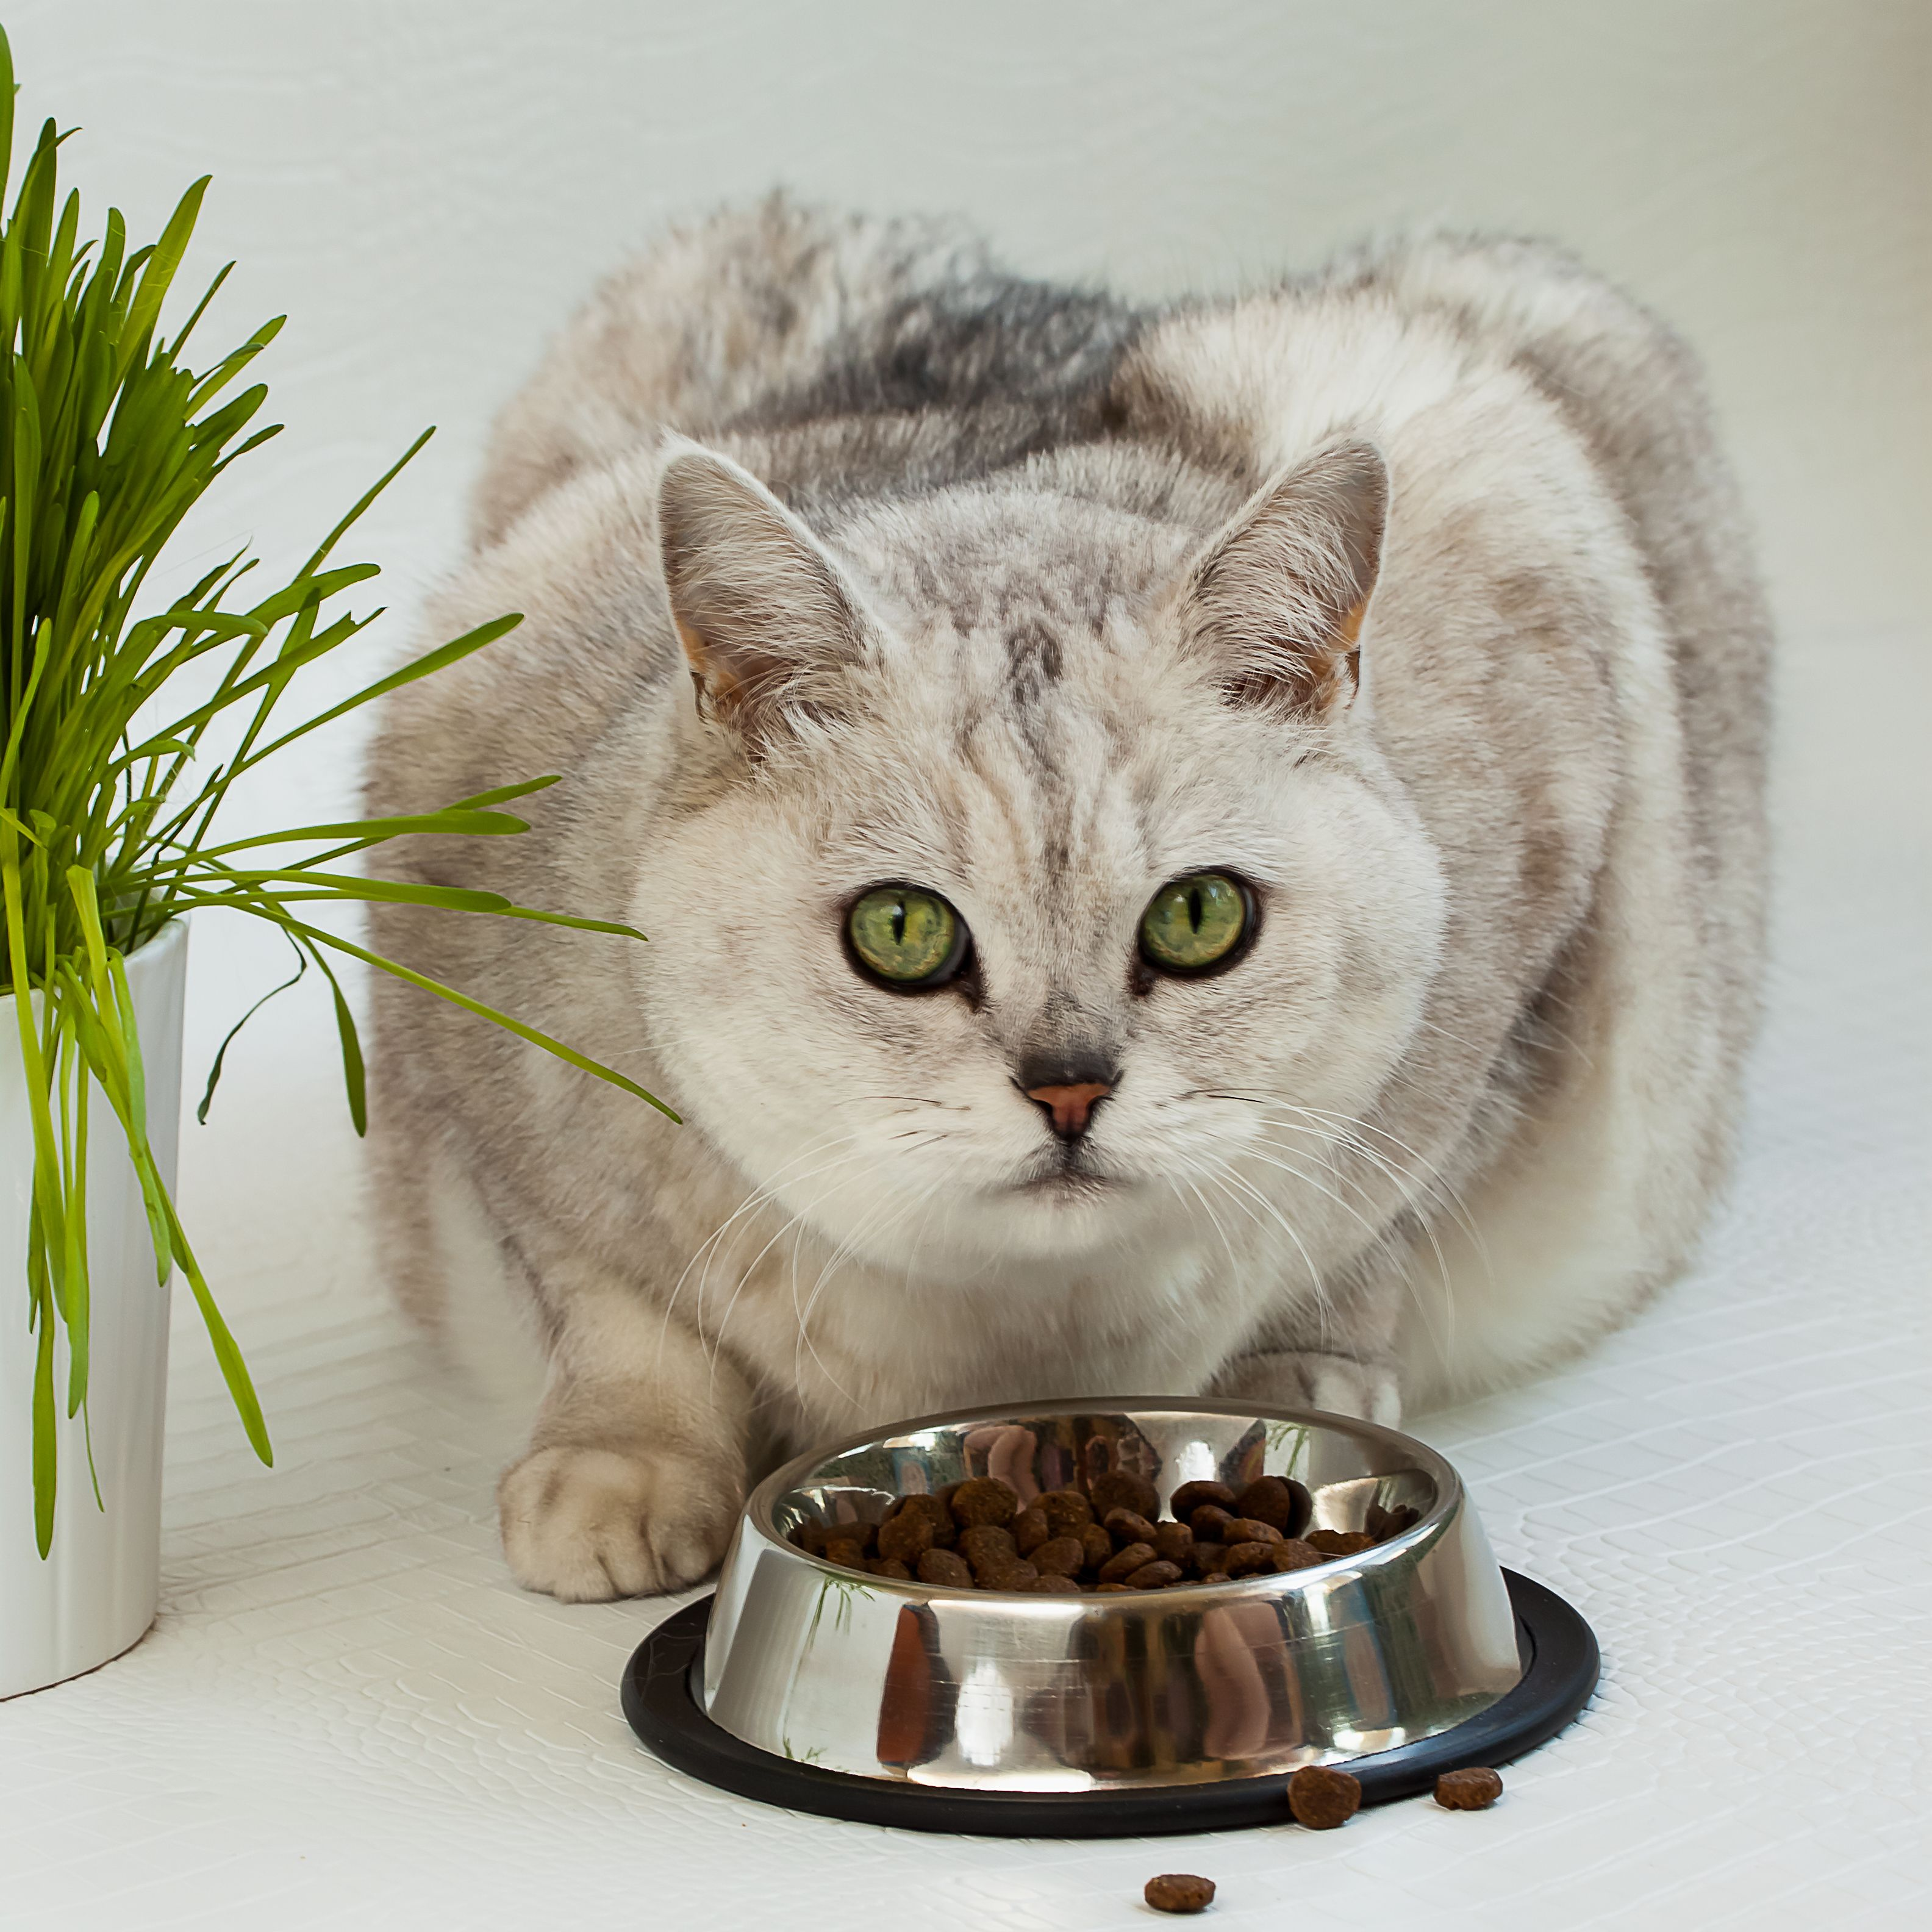 Homemade cat food -- Cat sitting front of bowl  food